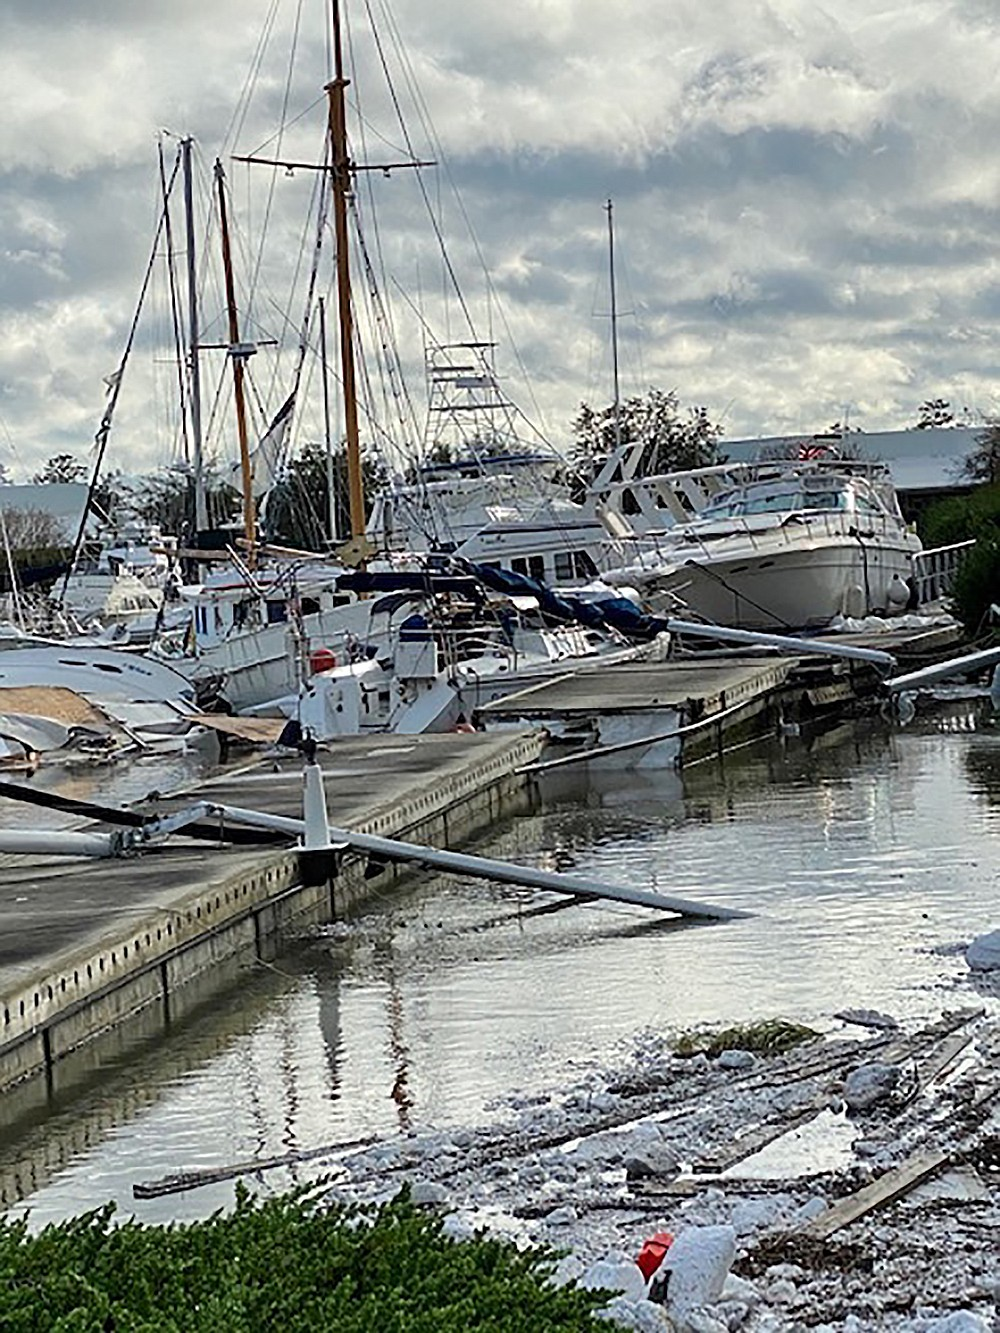 This photo provided by Tina Austin shows damage at the Barber Marina in Elberta, Ala., Wednesday, Sept. 16, 2020, caused by Hurricane Sally. (Tina Austin via AP)